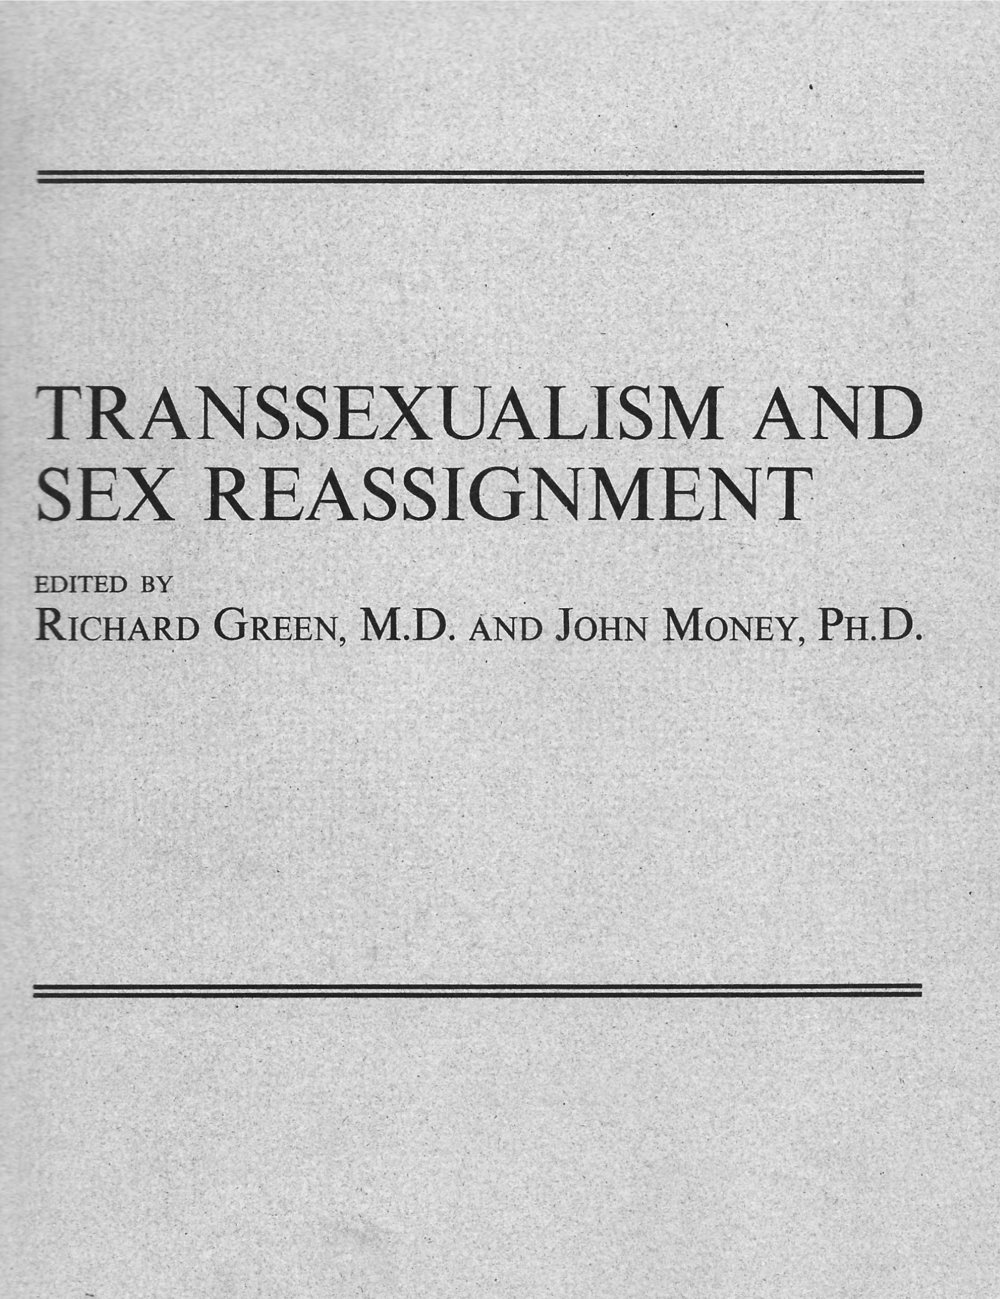 Transsexualism and Sex Reassignment - Richard Green & John Money1969